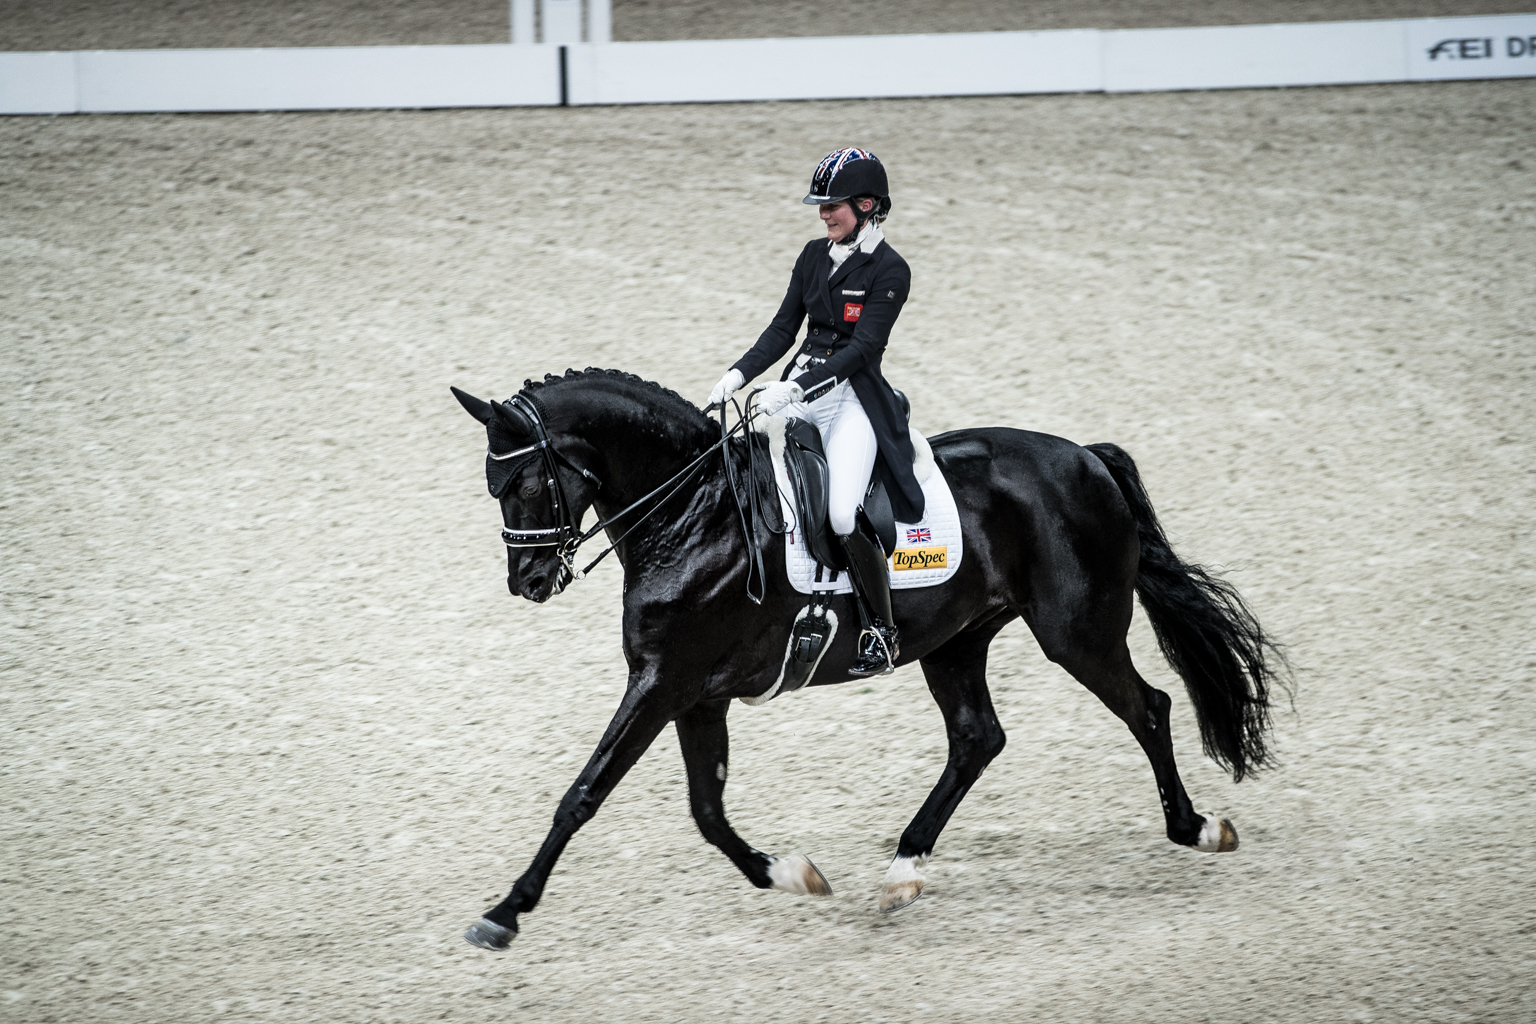 Fitness On Toast - FEI Dressage World Cup Finals Paris April 2018 France-25